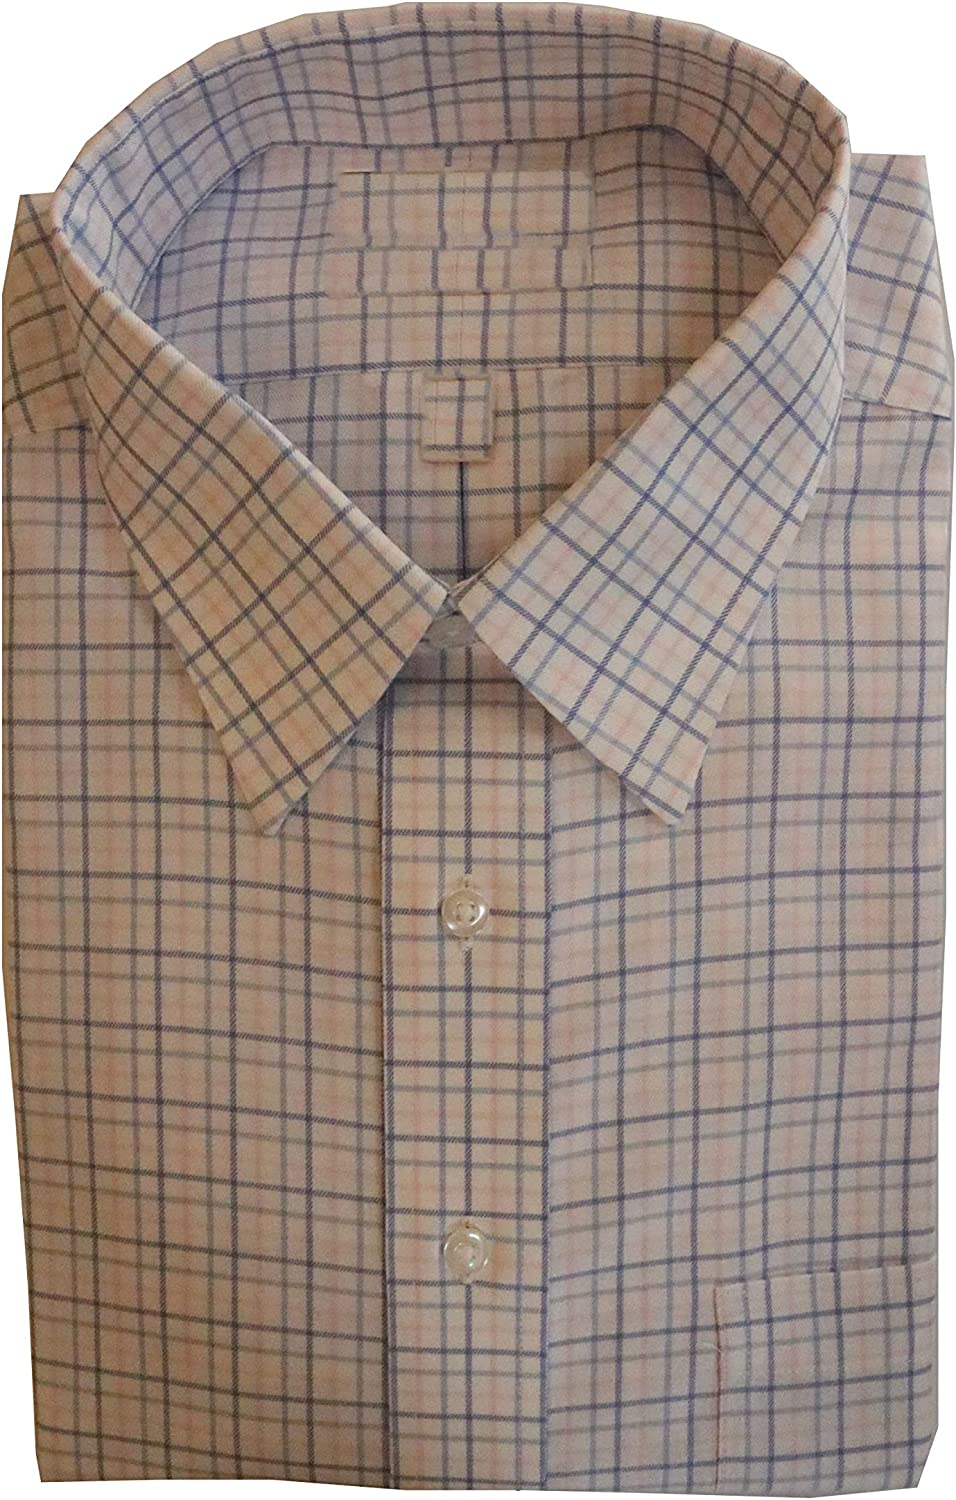 Gold Label Roundtree & Yorke Non-Iron Regular Point Collar Check Dress Shirt G16A0162 Pink Multi